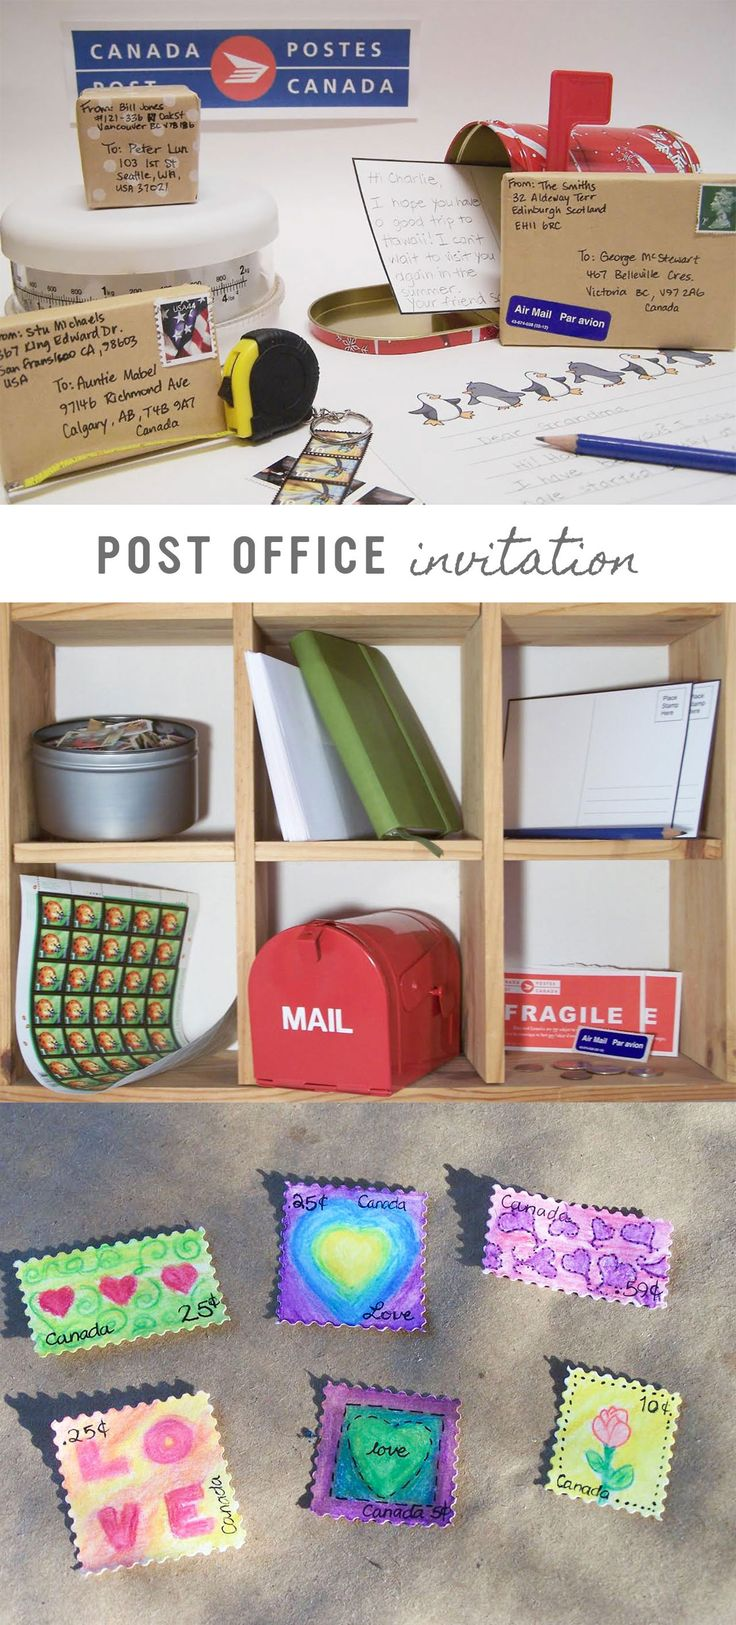 For hours of fun and learning create a post office invitation to play for kids